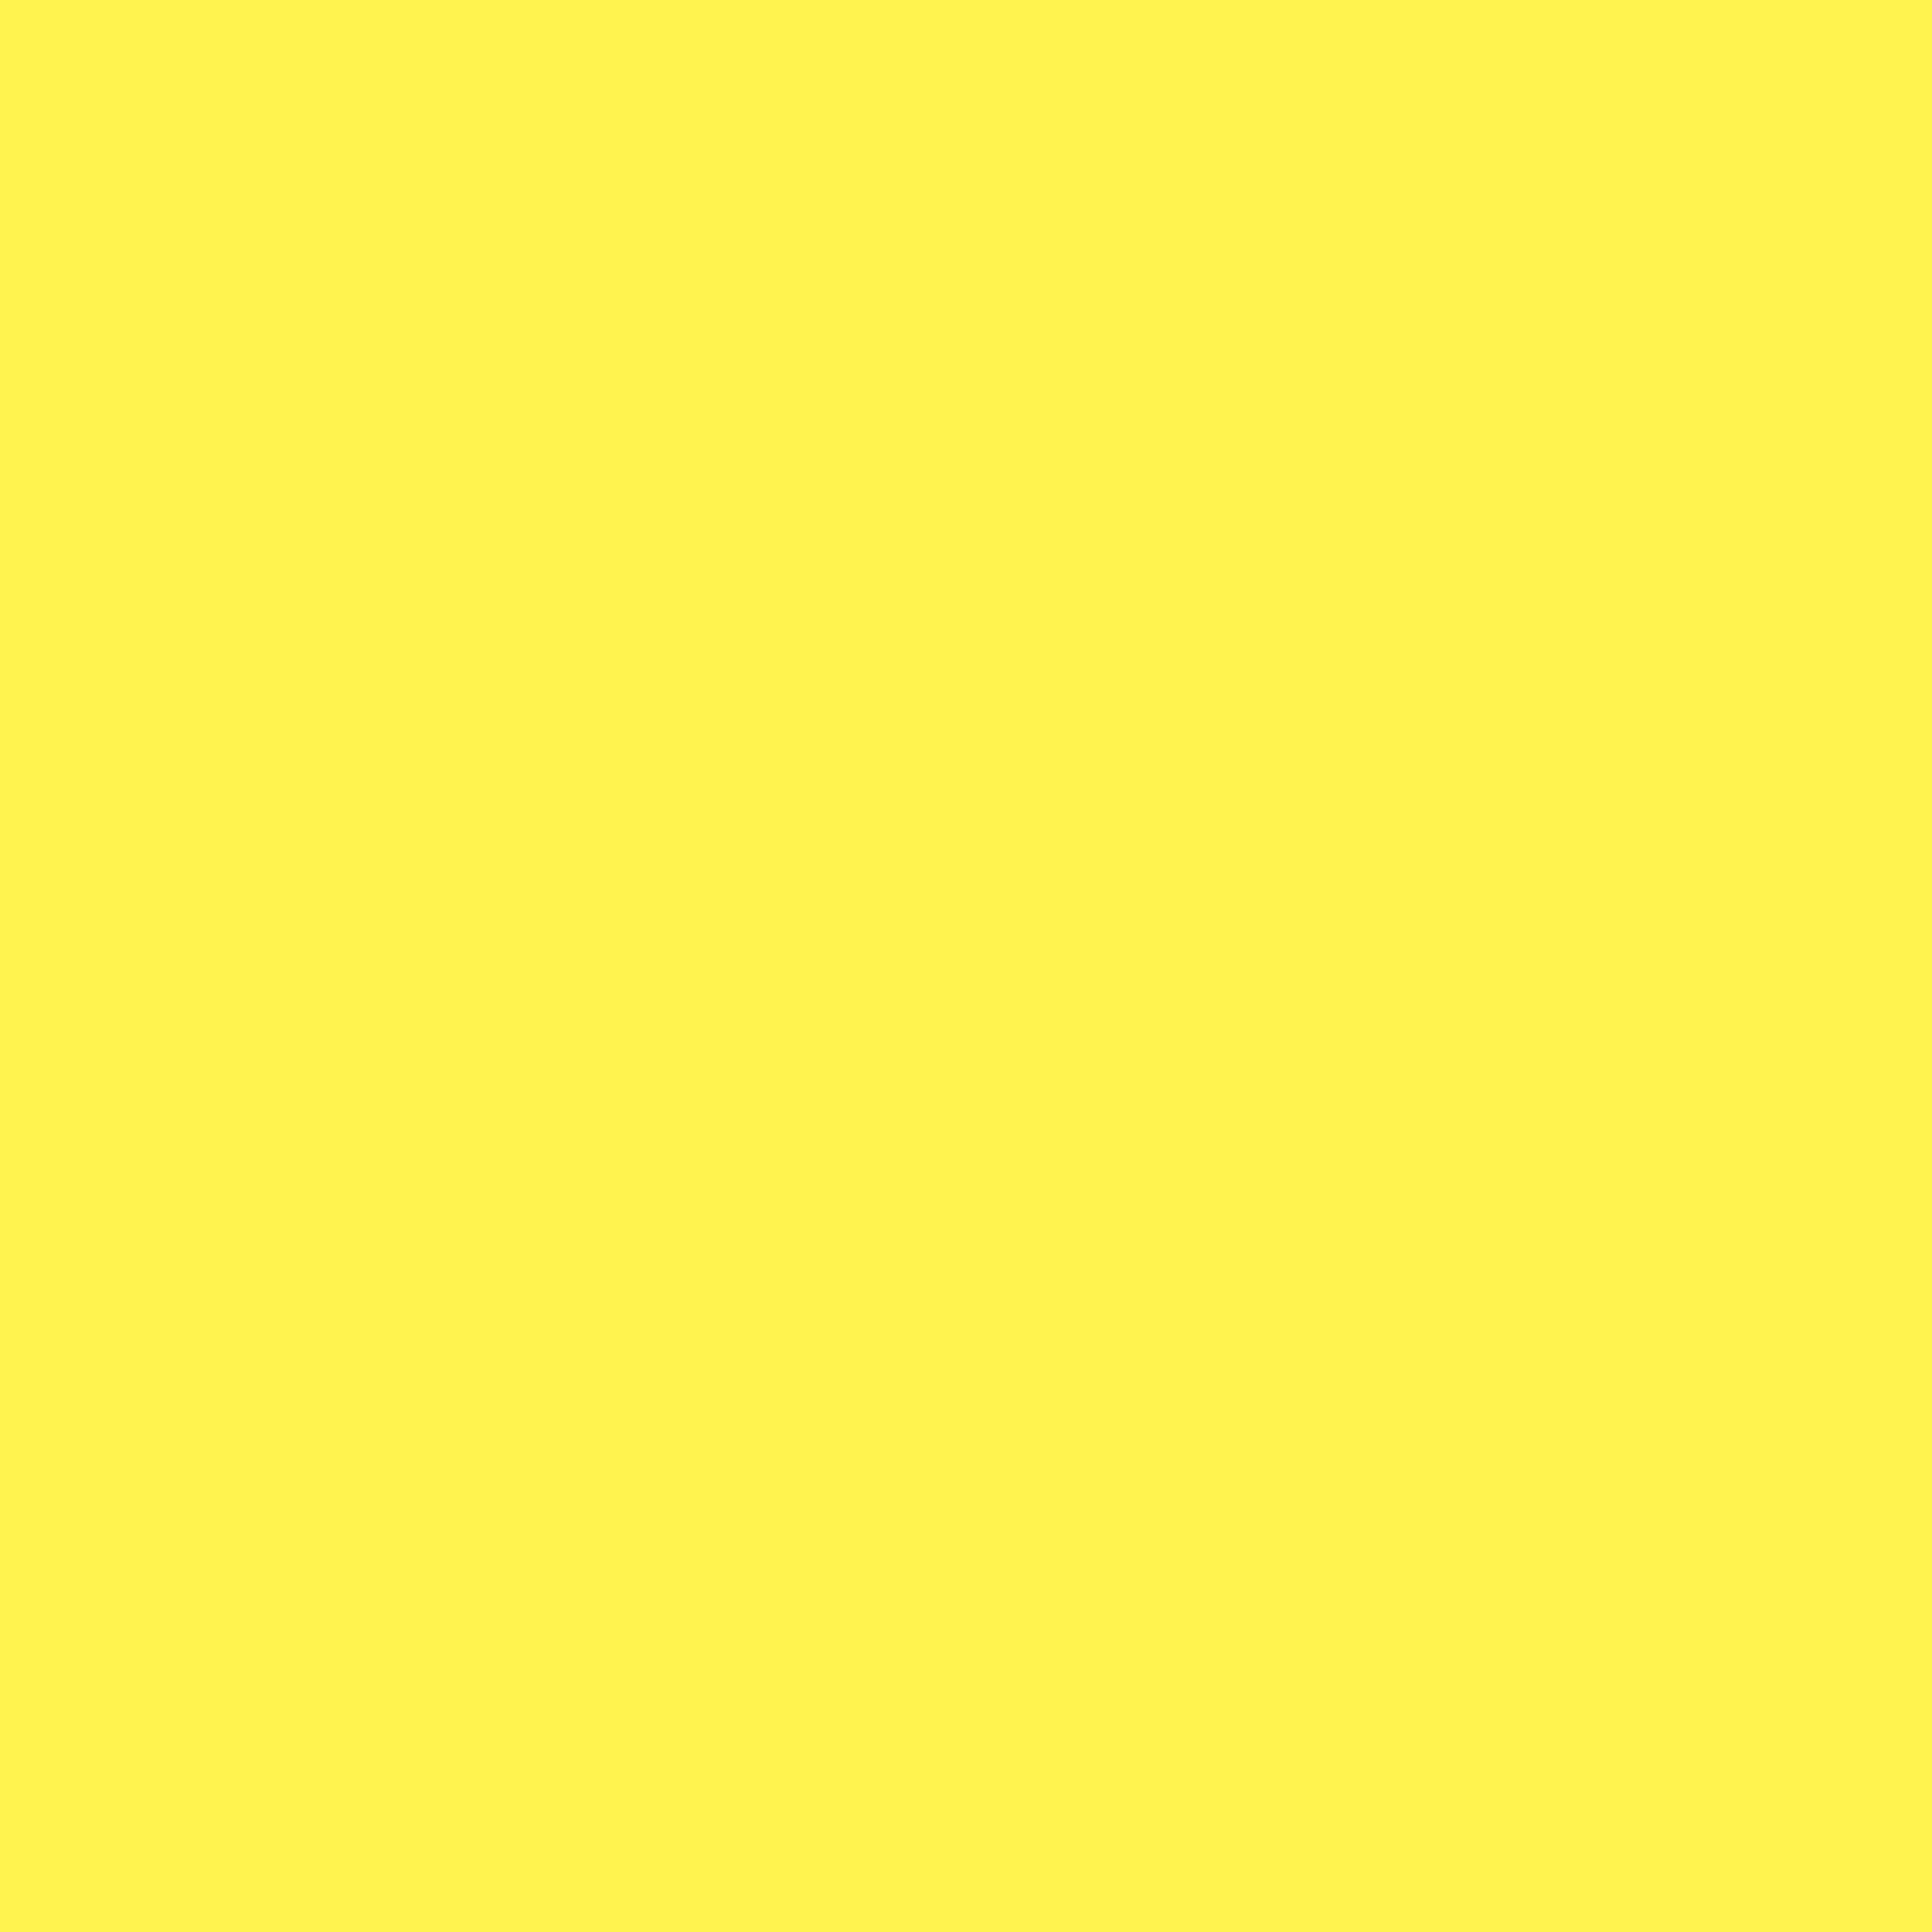 2732x2732 Lemon Yellow Solid Color Background